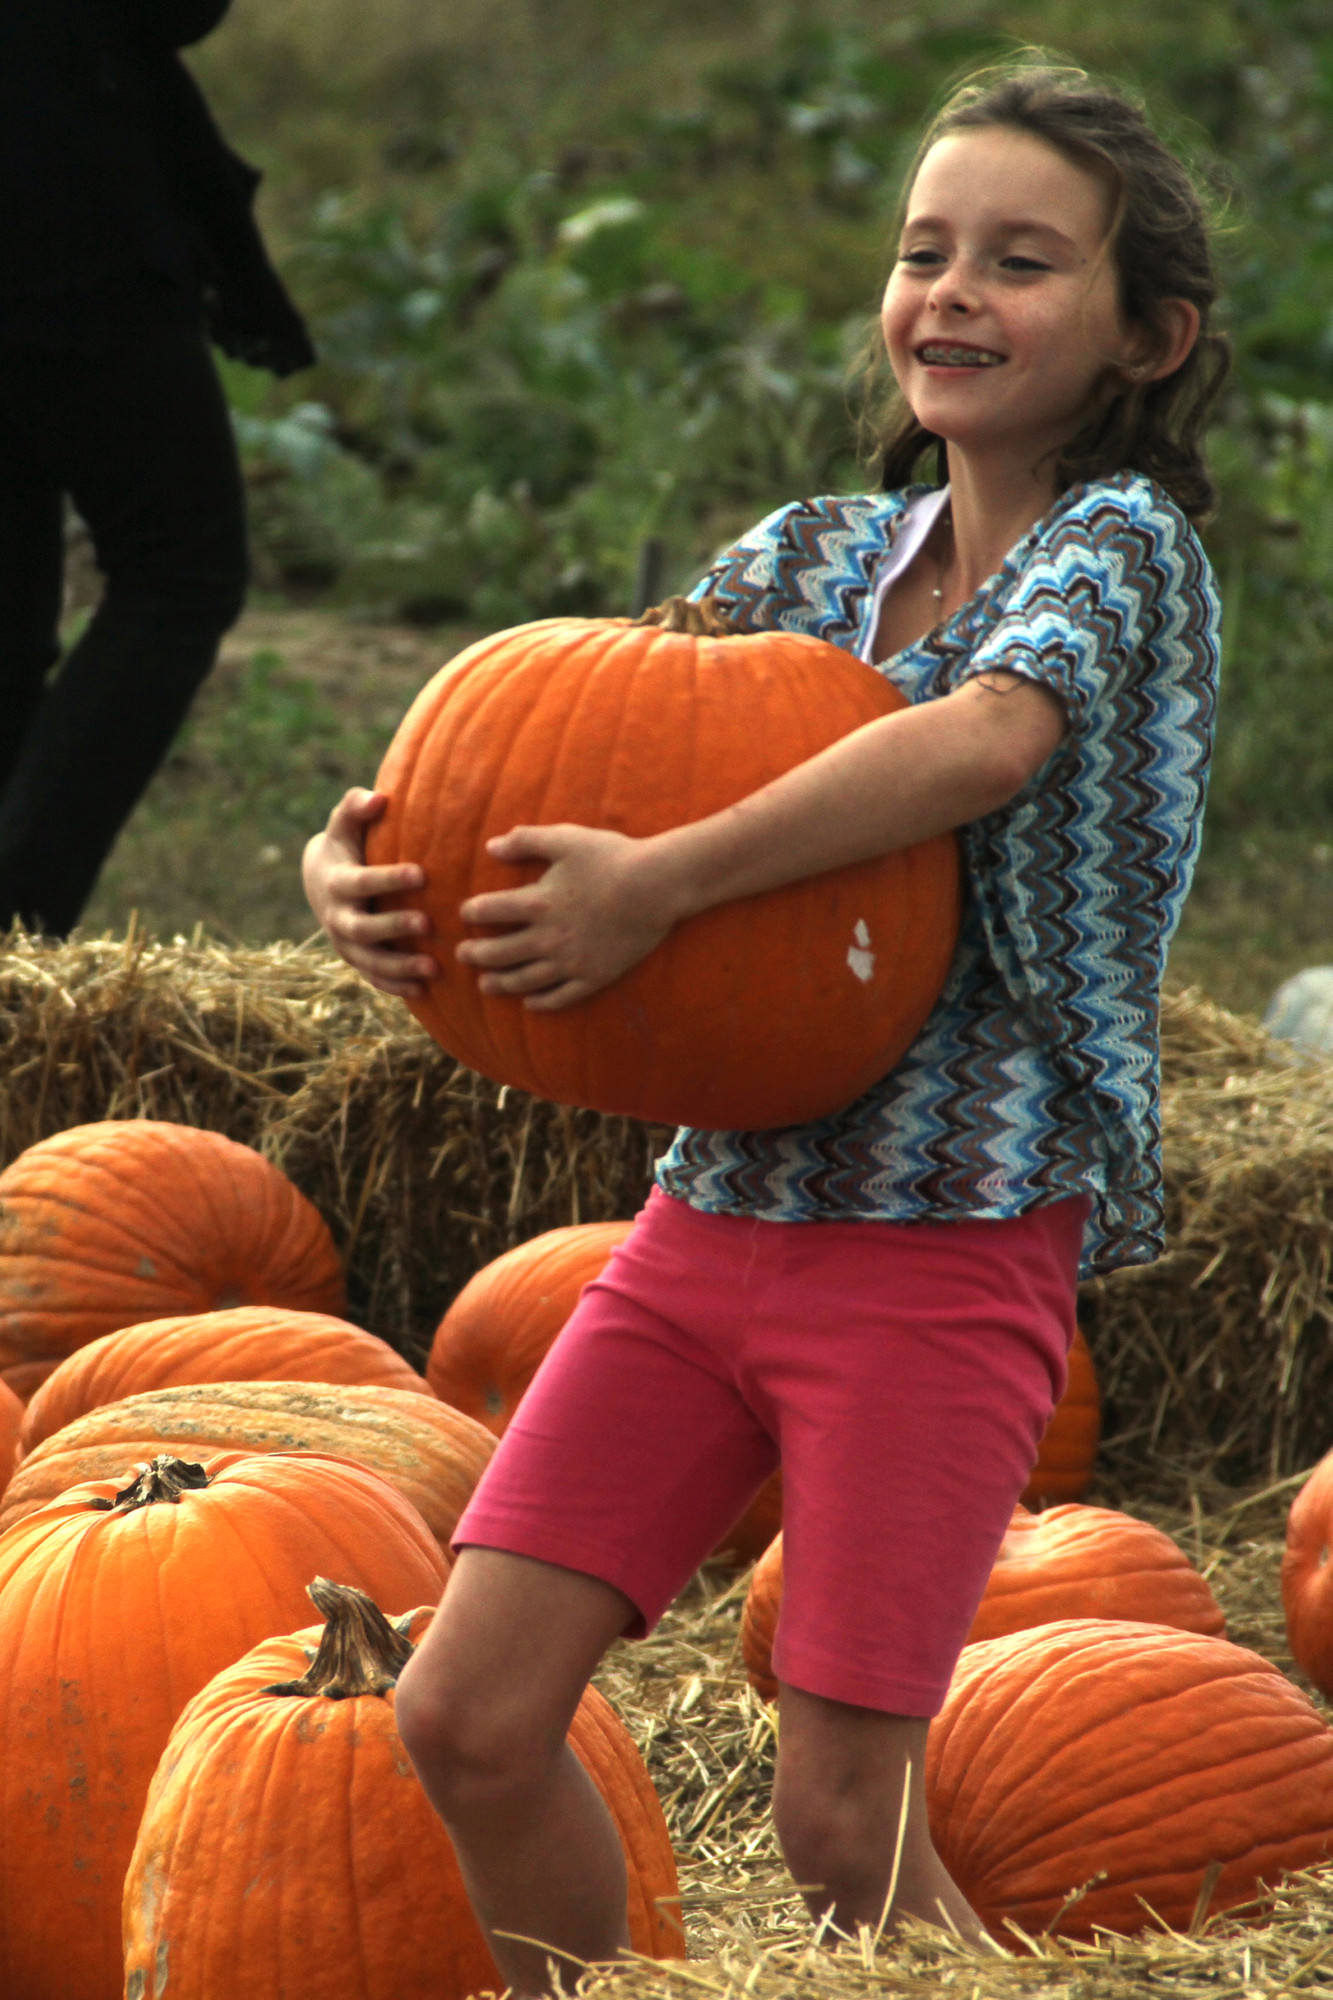 Emily Bradley scored a huge pumpkin from the Crossroads patch.